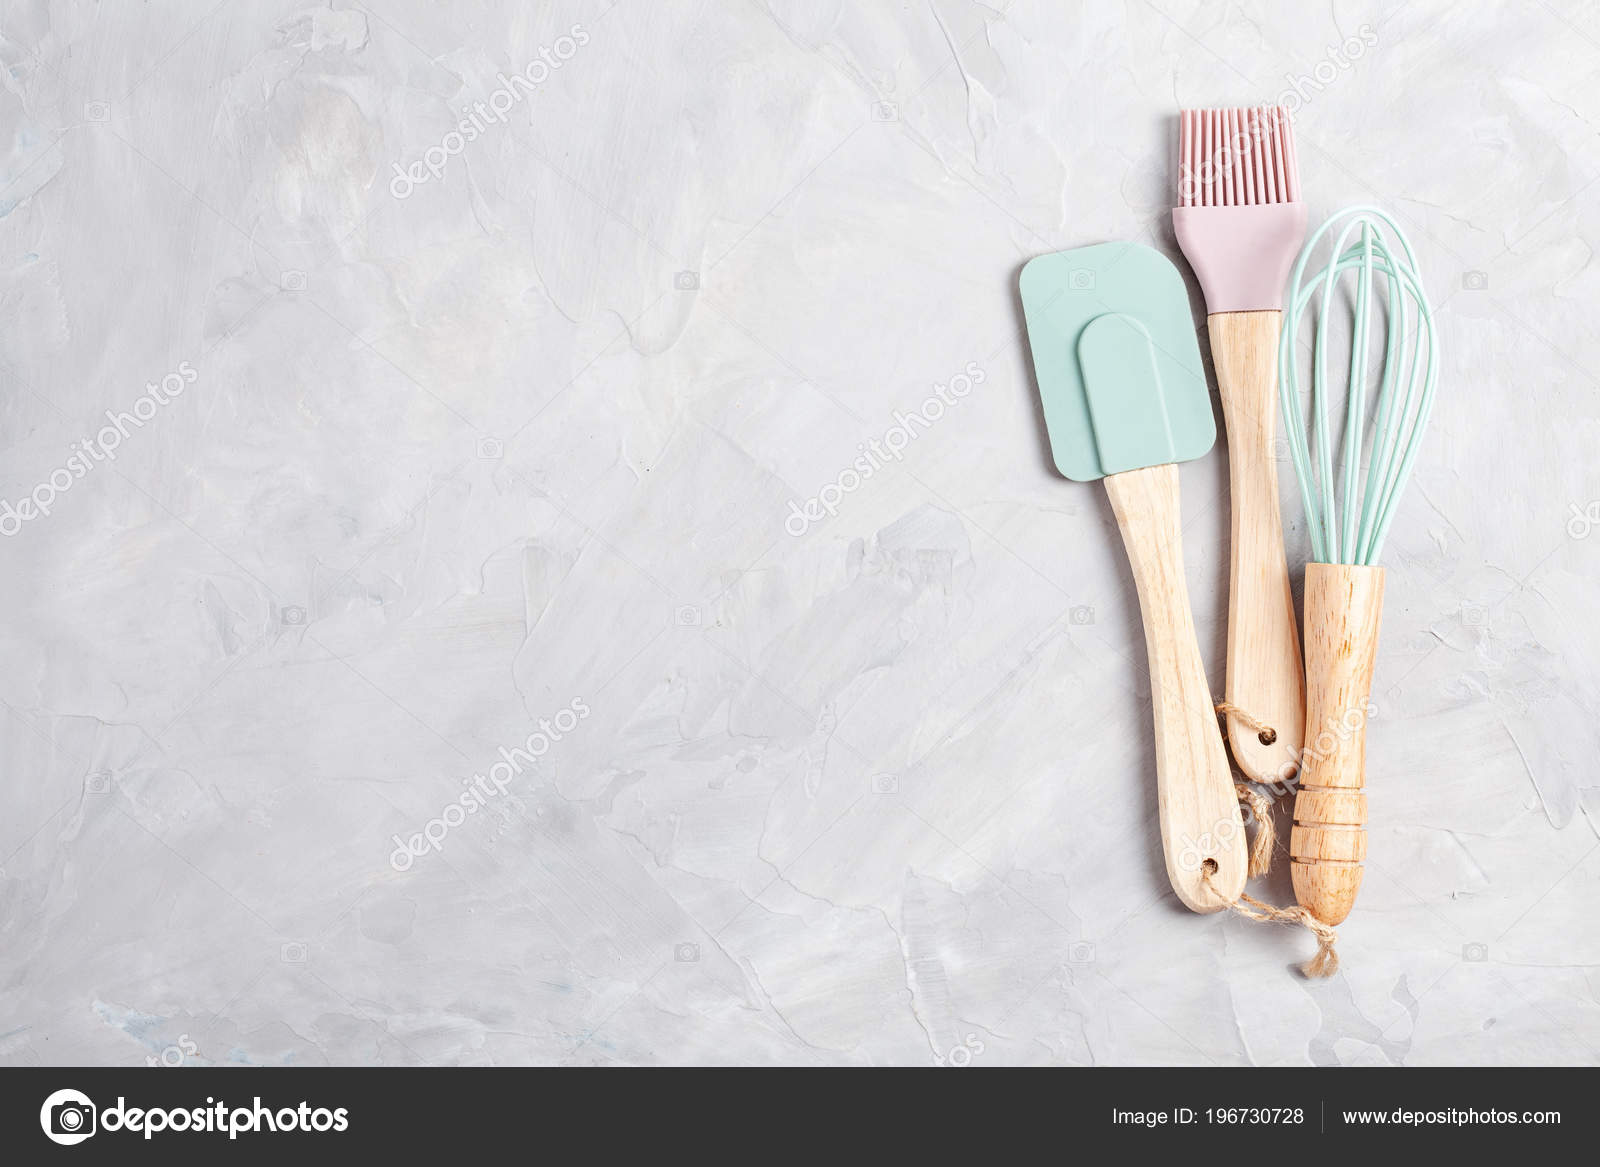 colored kitchen appliances tables for small kitchens 粉彩彩色厨房用具的顶级视图烹饪博客班级理念 图库照片 c netrun78 196730728